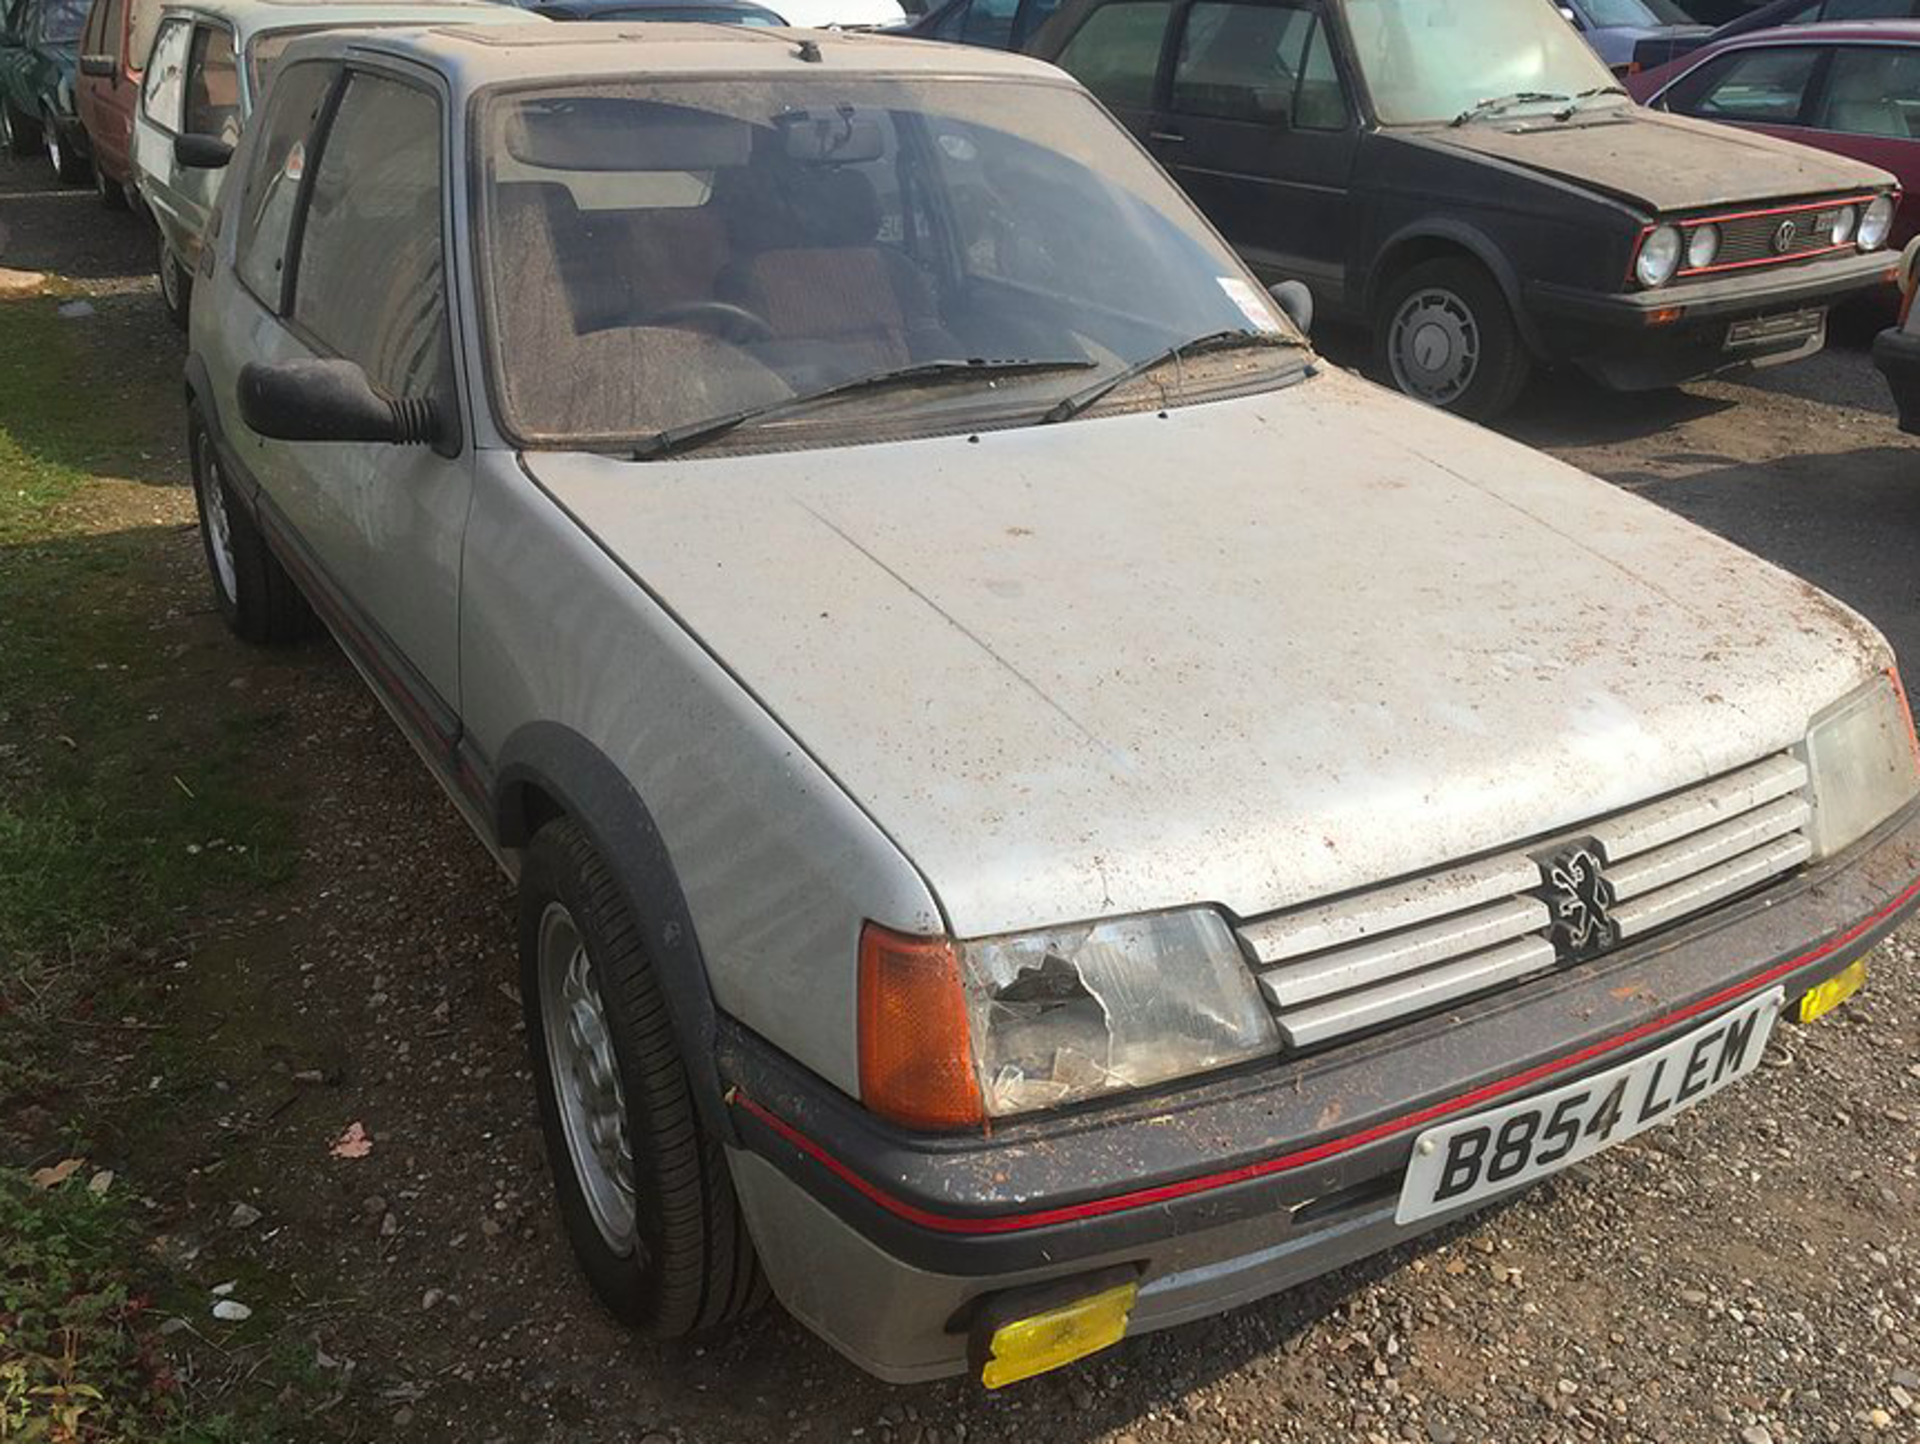 1985 Peugeot 205 GTI Phase 1 1.6